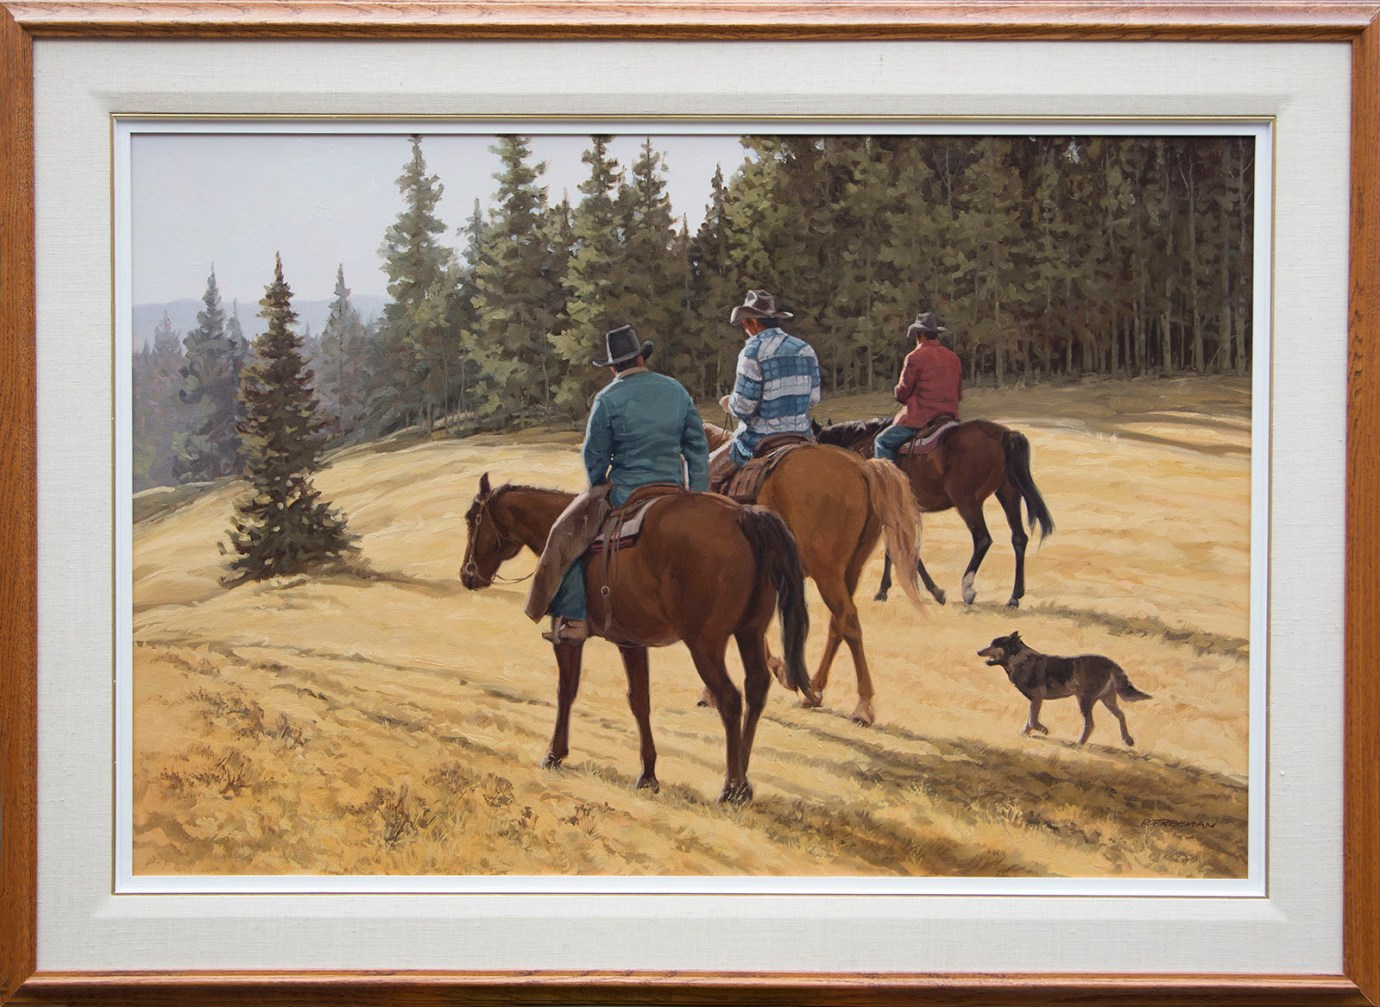 Returning riders - framed